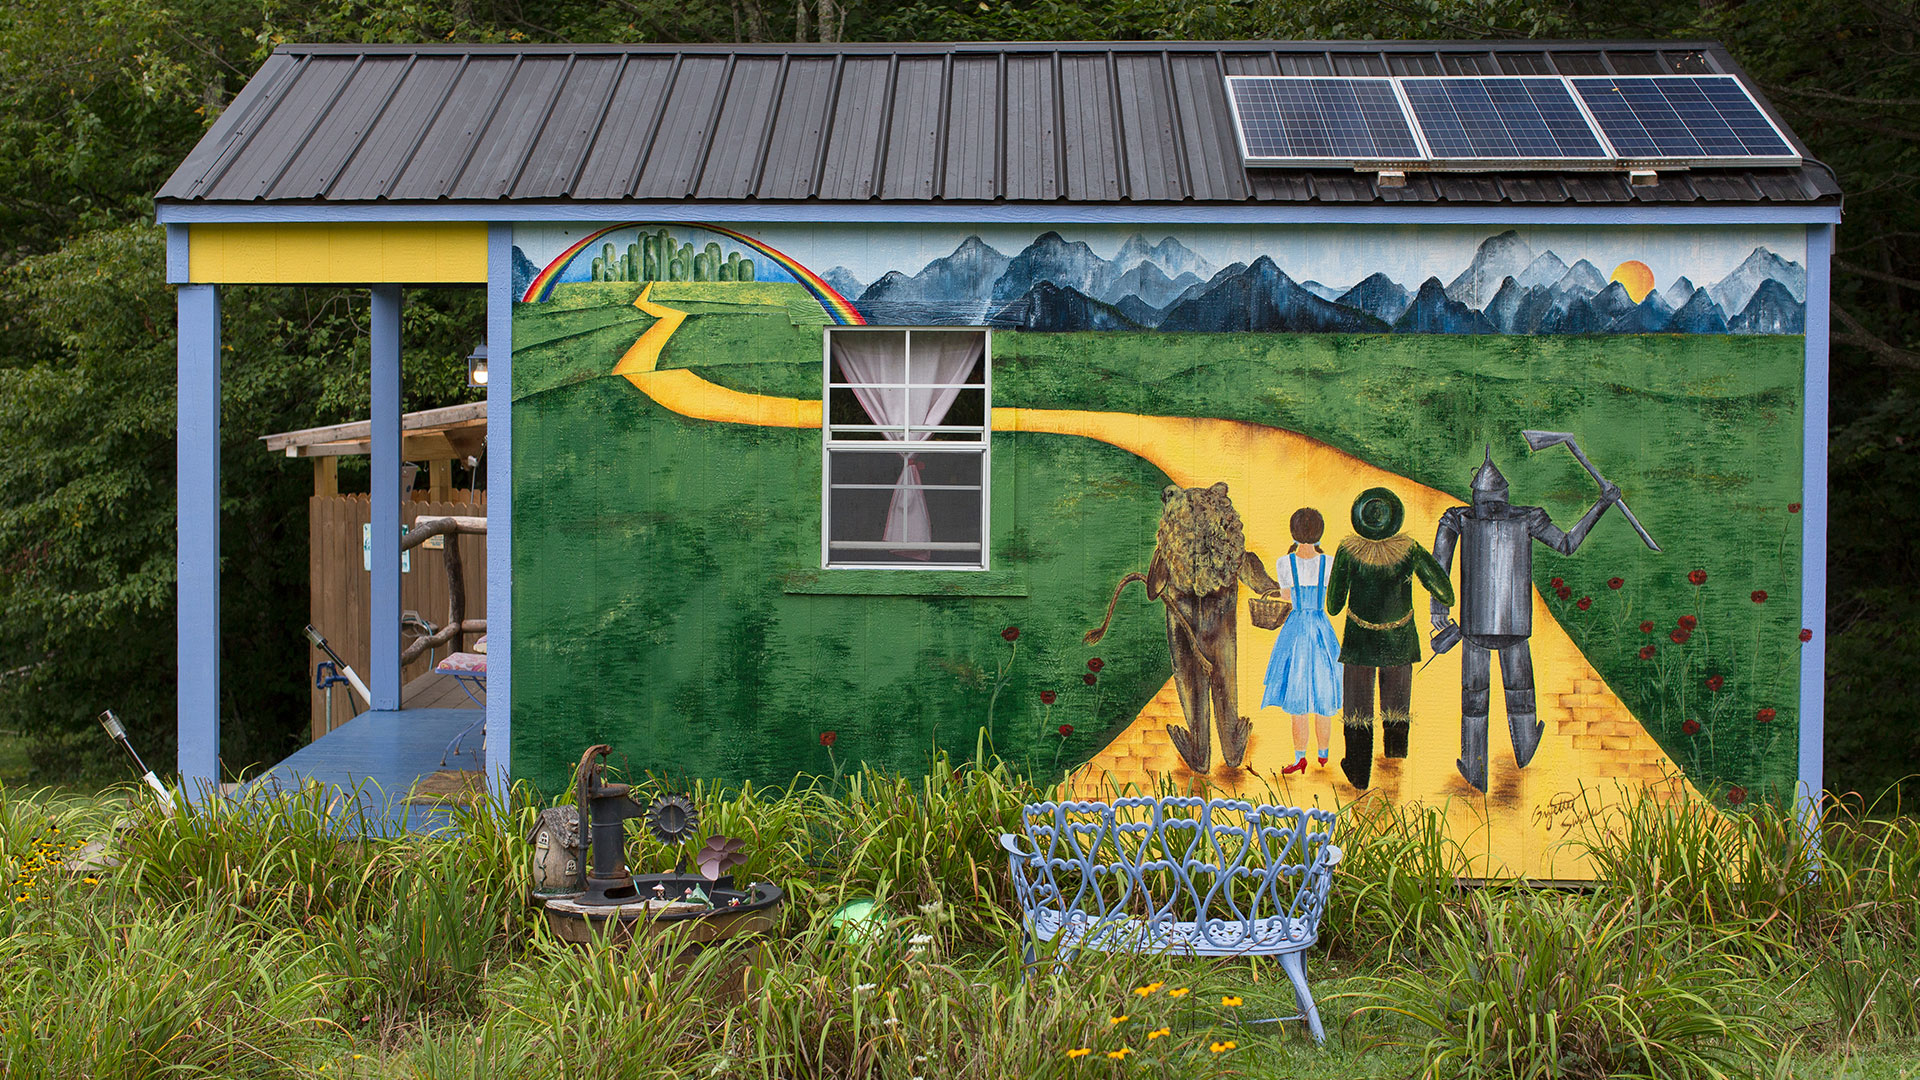 Wizard of Oz Tiny House Mural